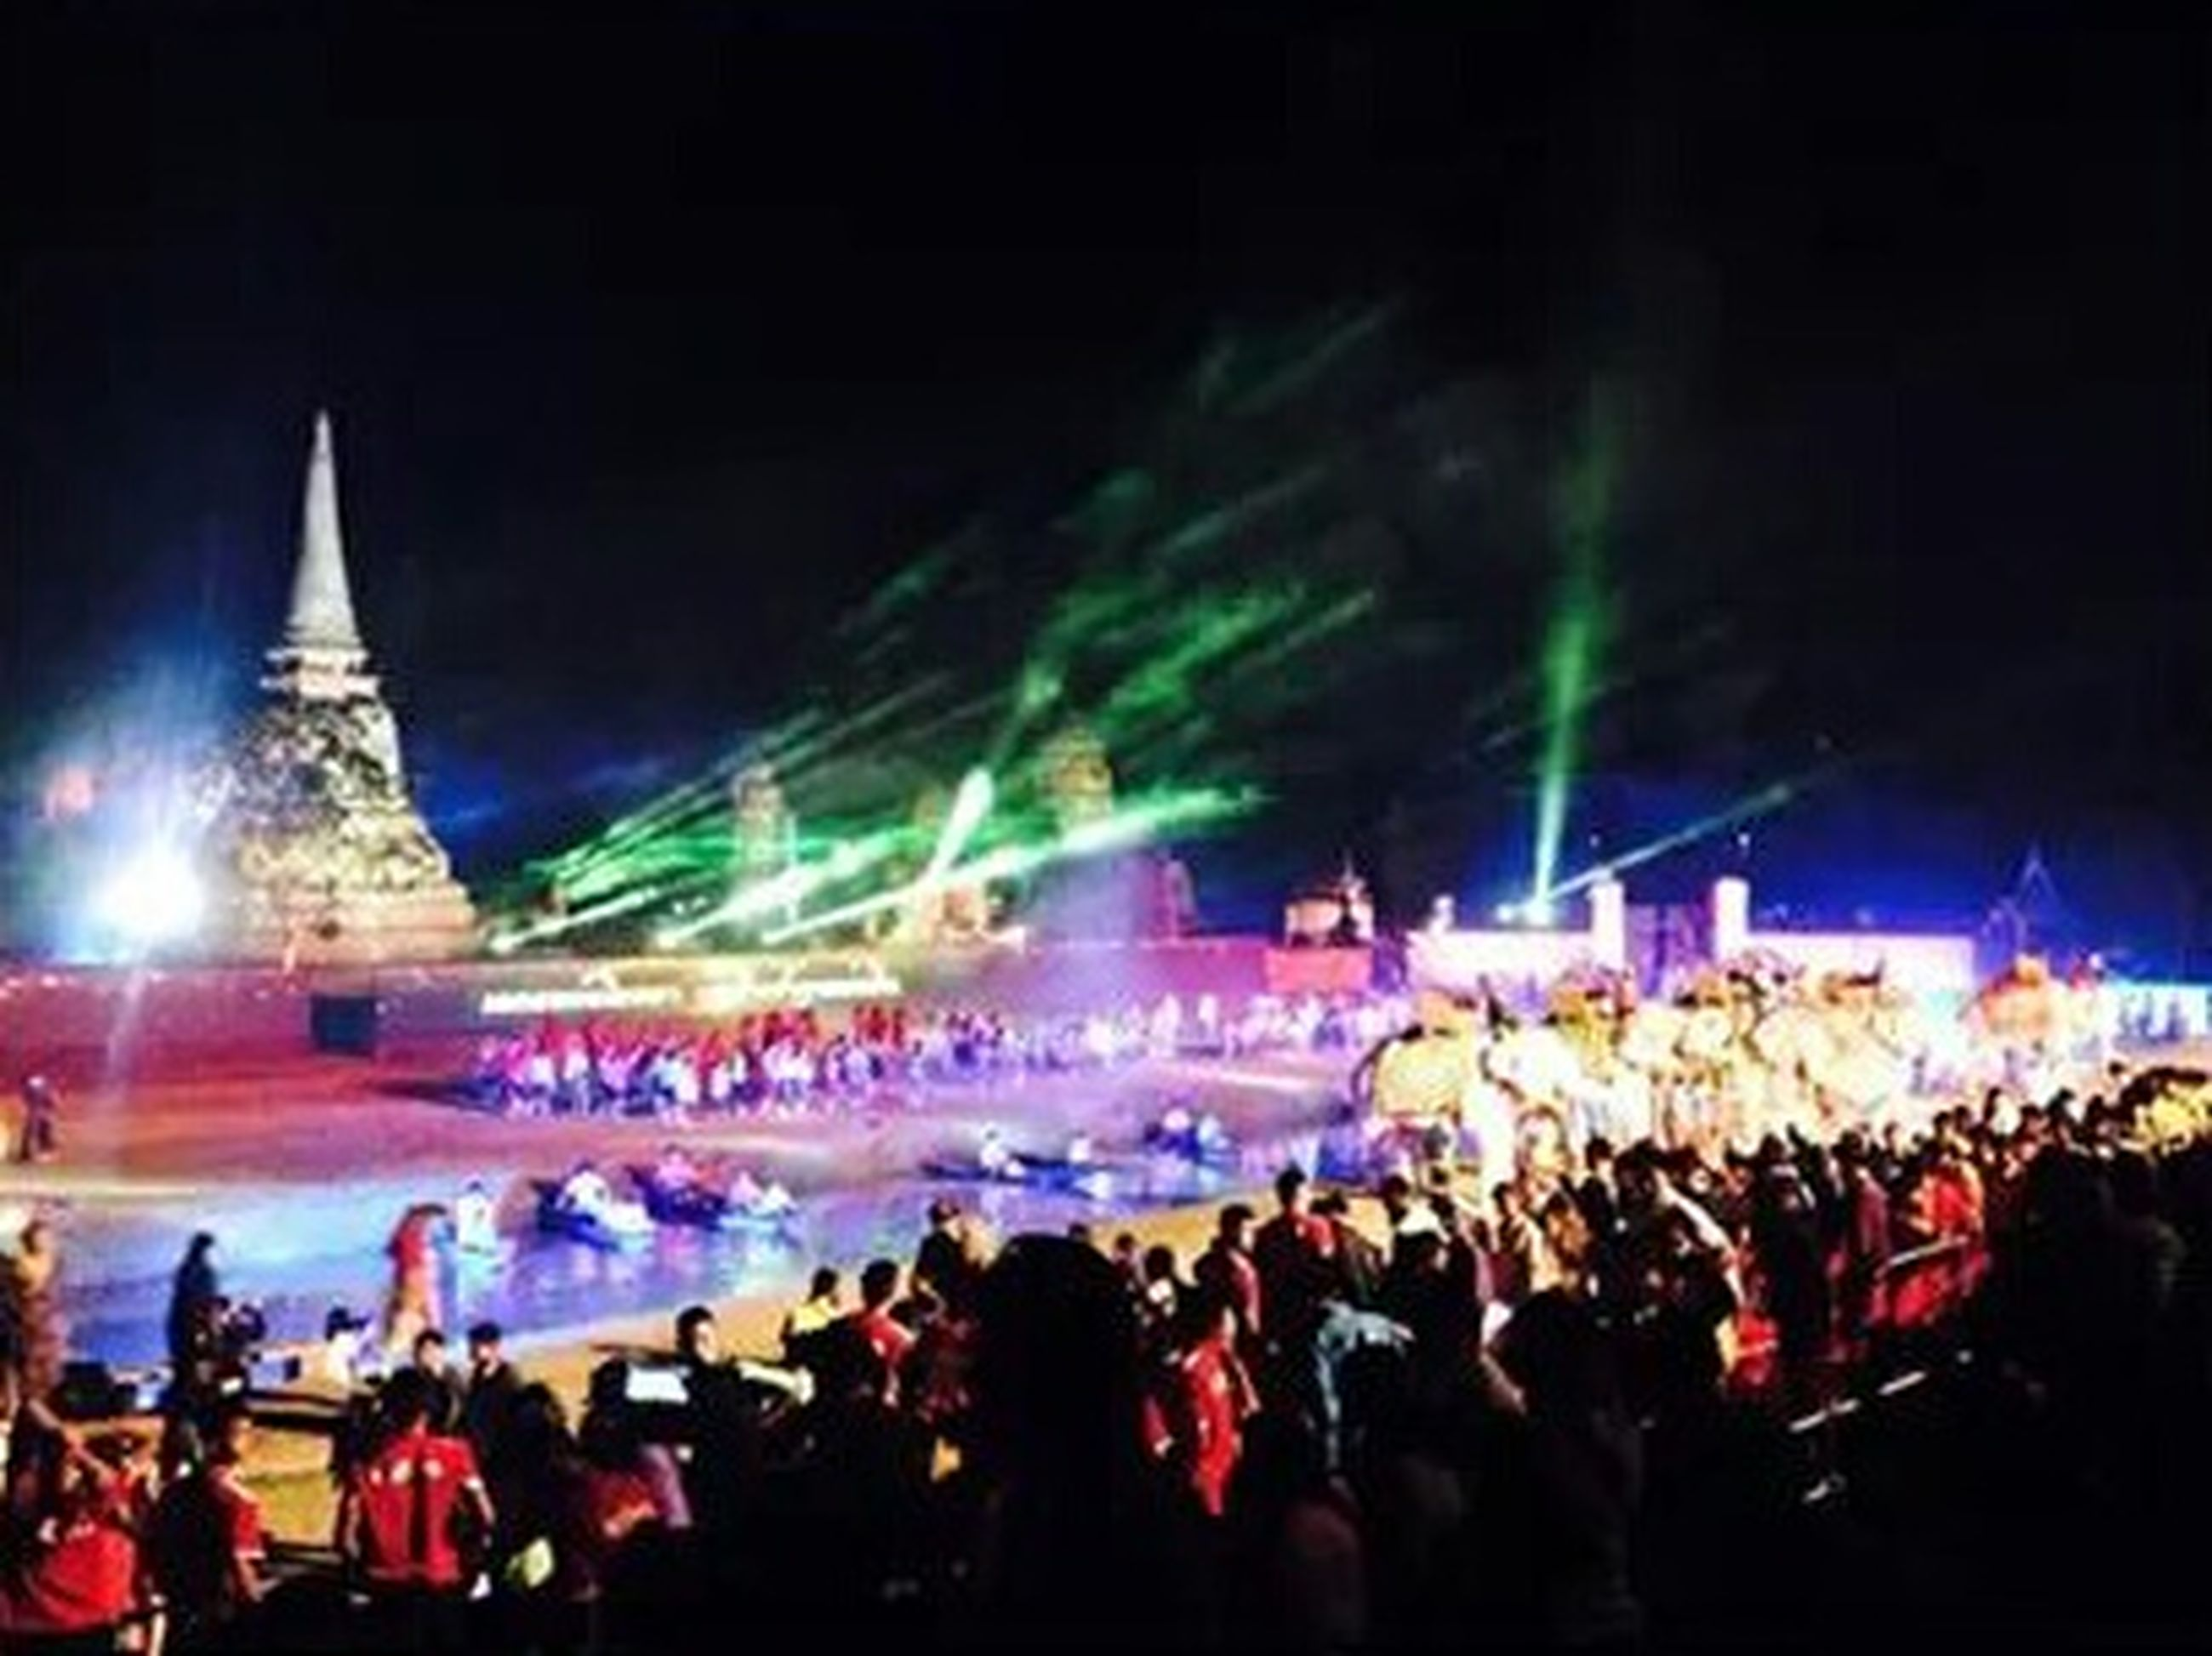 large group of people, crowd, illuminated, lifestyles, men, person, night, leisure activity, enjoyment, celebration, event, arts culture and entertainment, performance, music, mixed age range, concert, stage - performance space, spectator